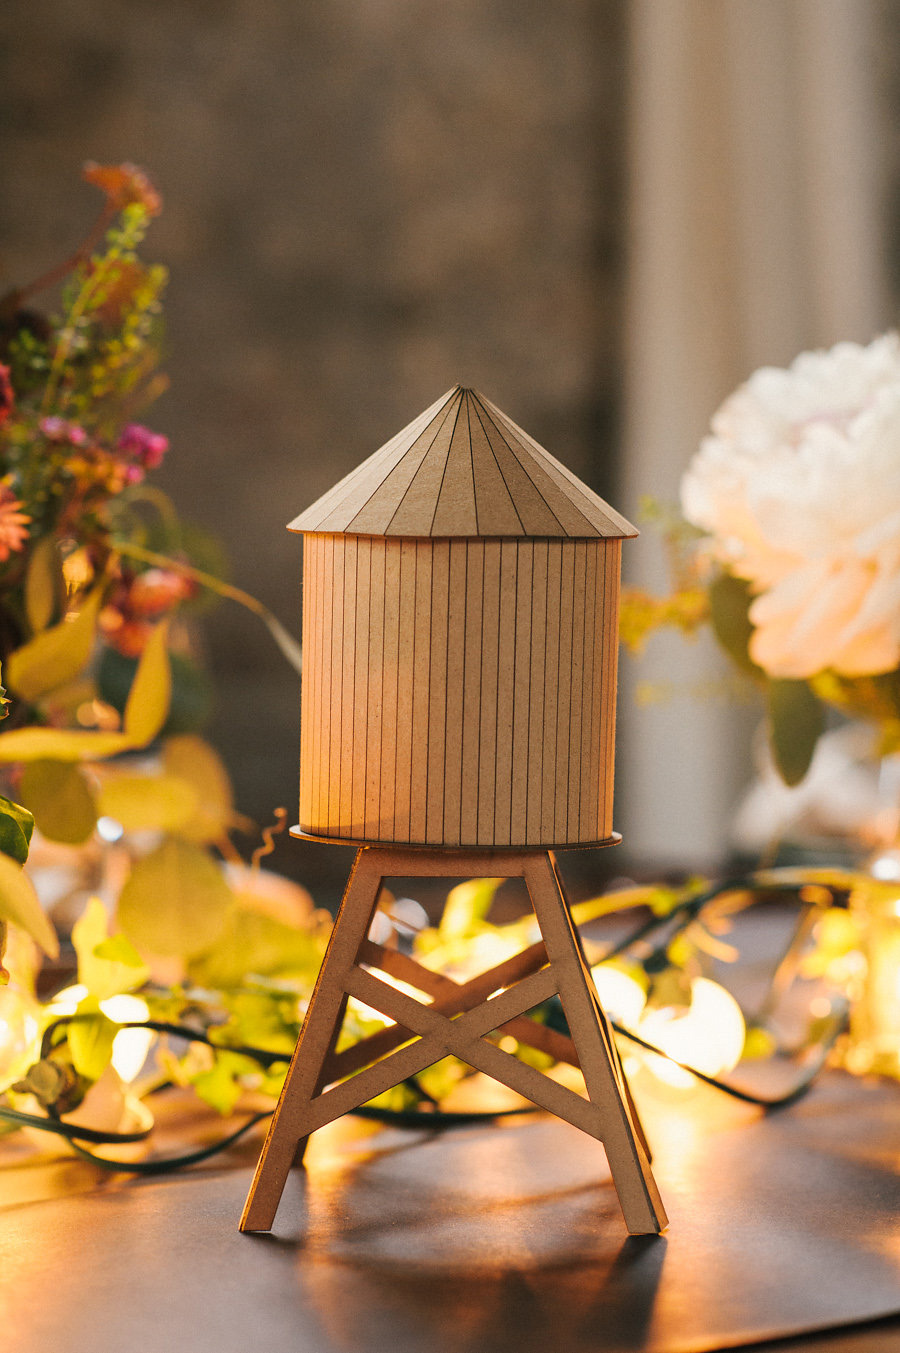 brooklyn-water-tower-cardboard-unique-wedding-inspiration-string-lights-rustic